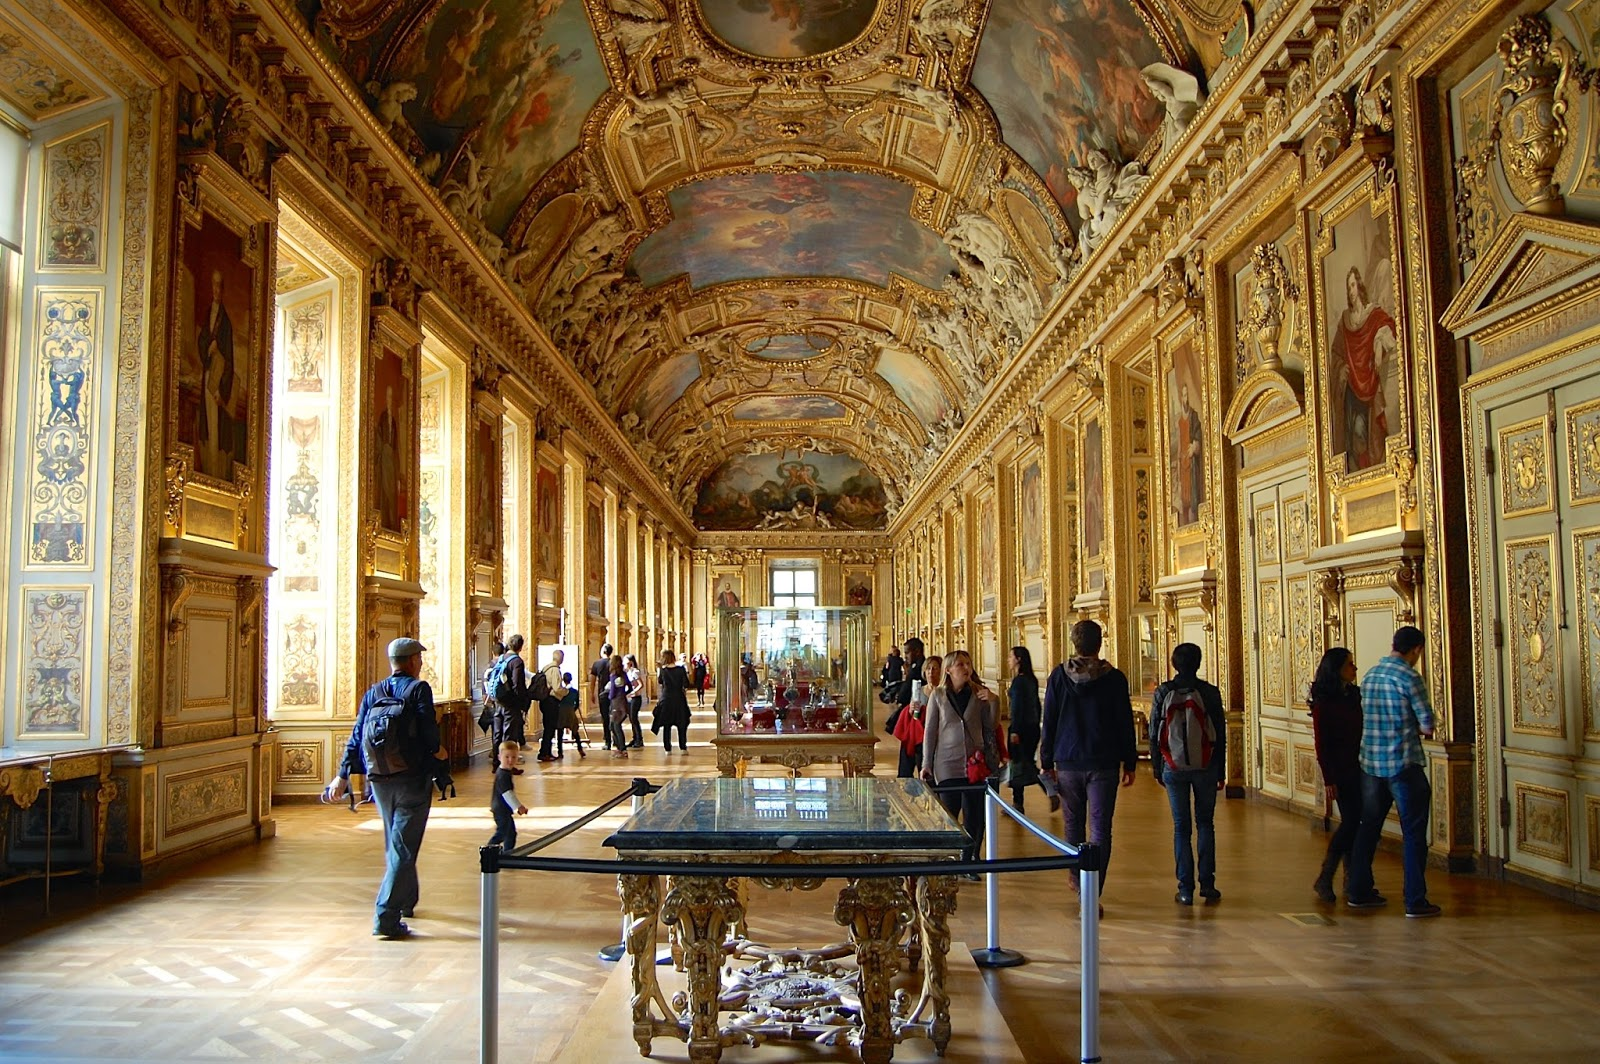 Room in the Musée du Louvre